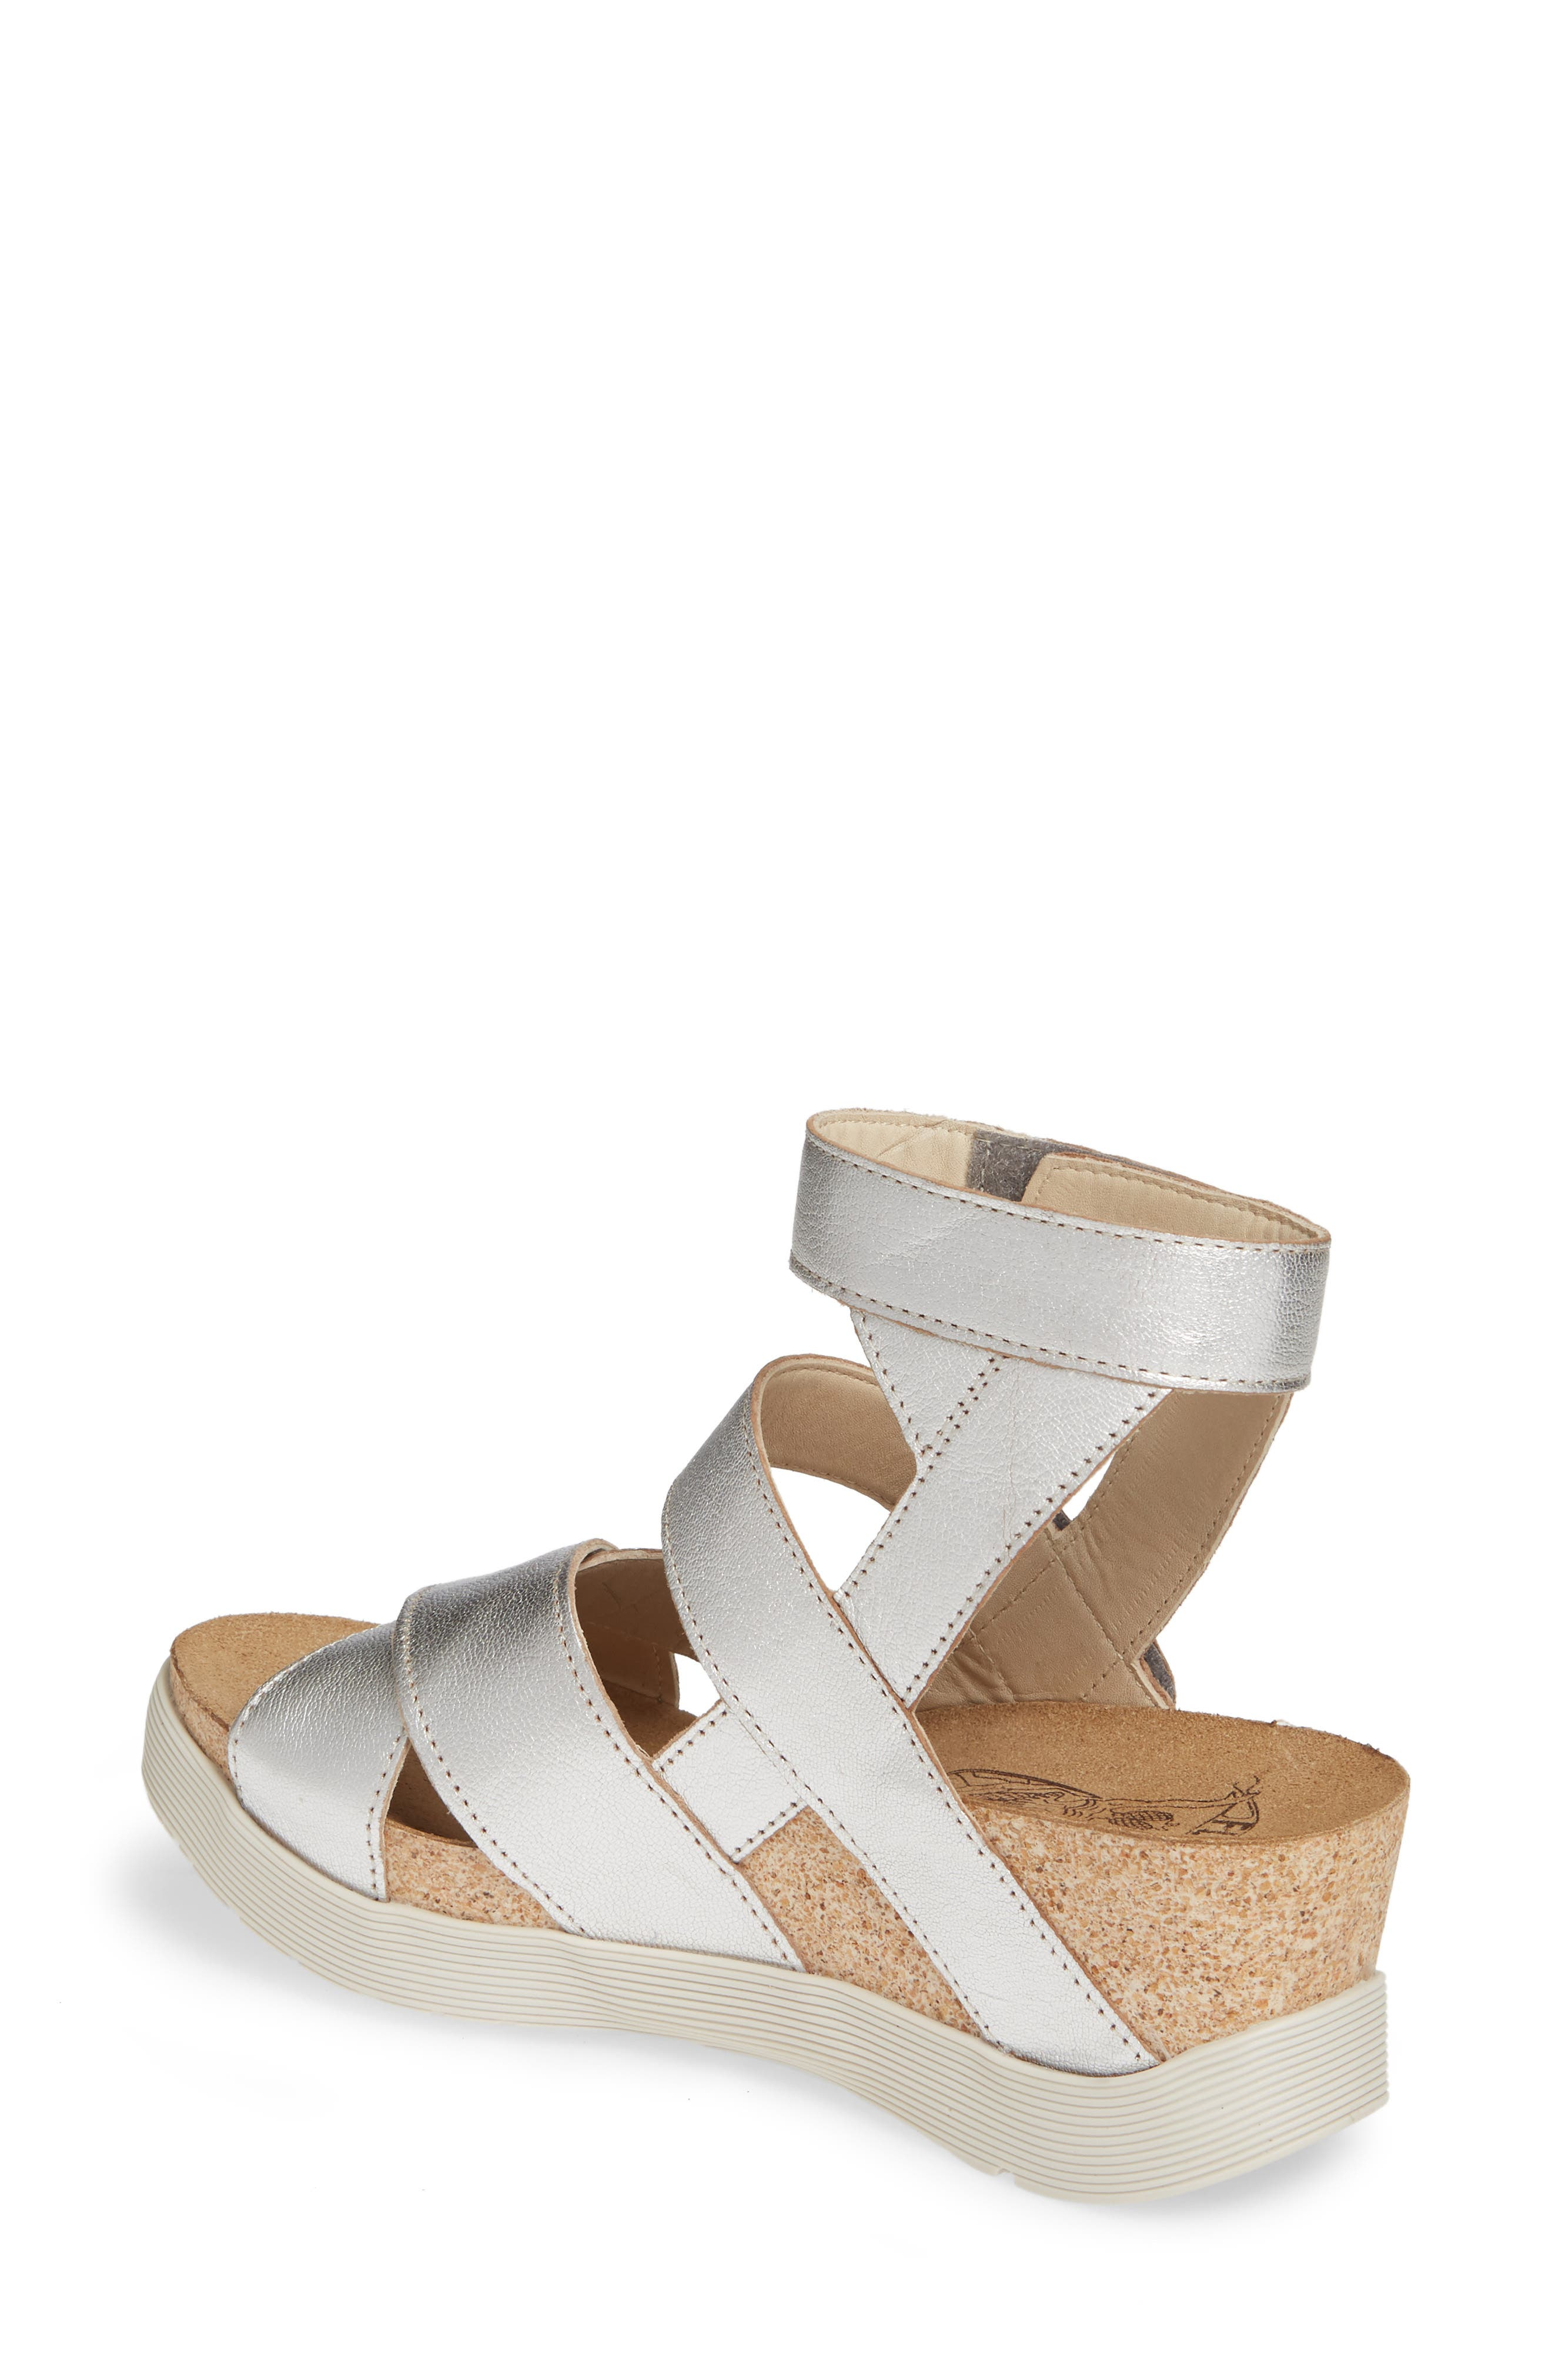 FLY LONDON, 'Wege' Leather Sandal, Alternate thumbnail 2, color, SILVER LEATHER